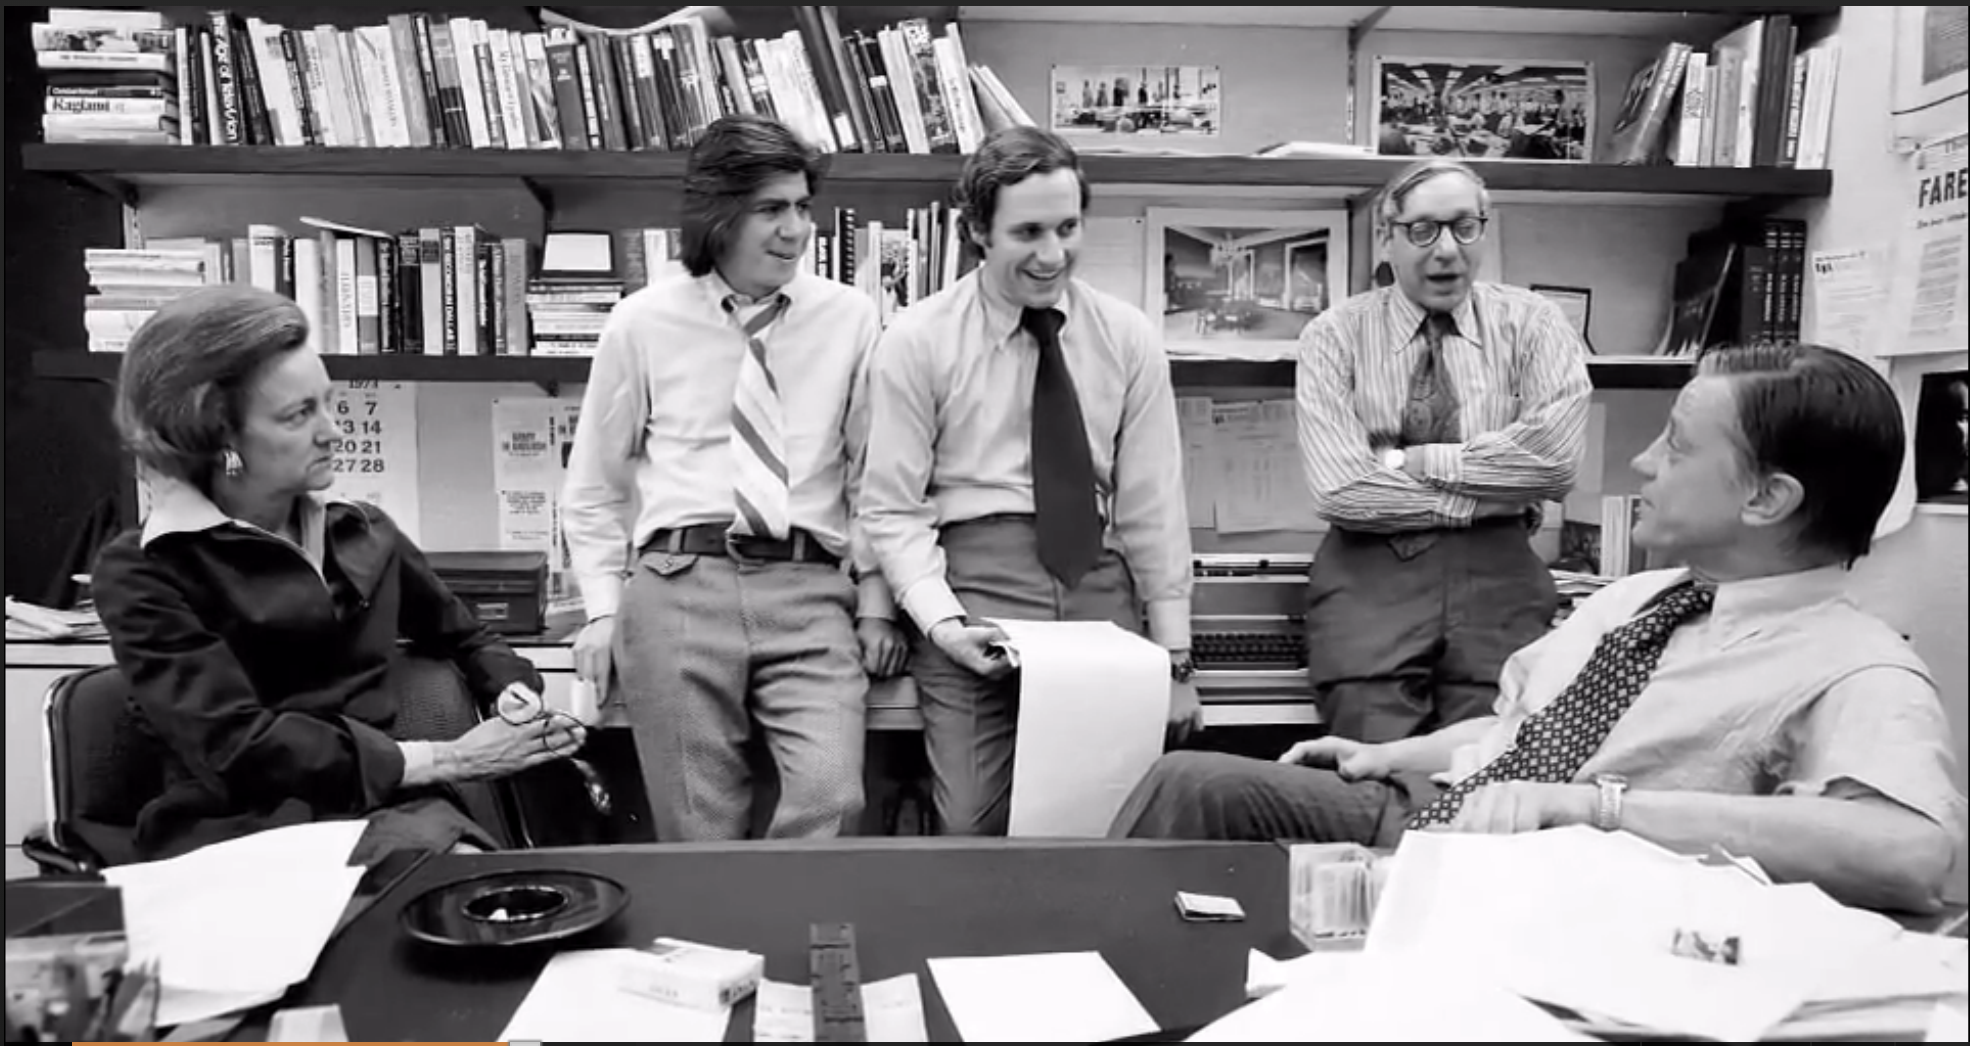 Redazione del Washington Post durante lo scandalo Watergate